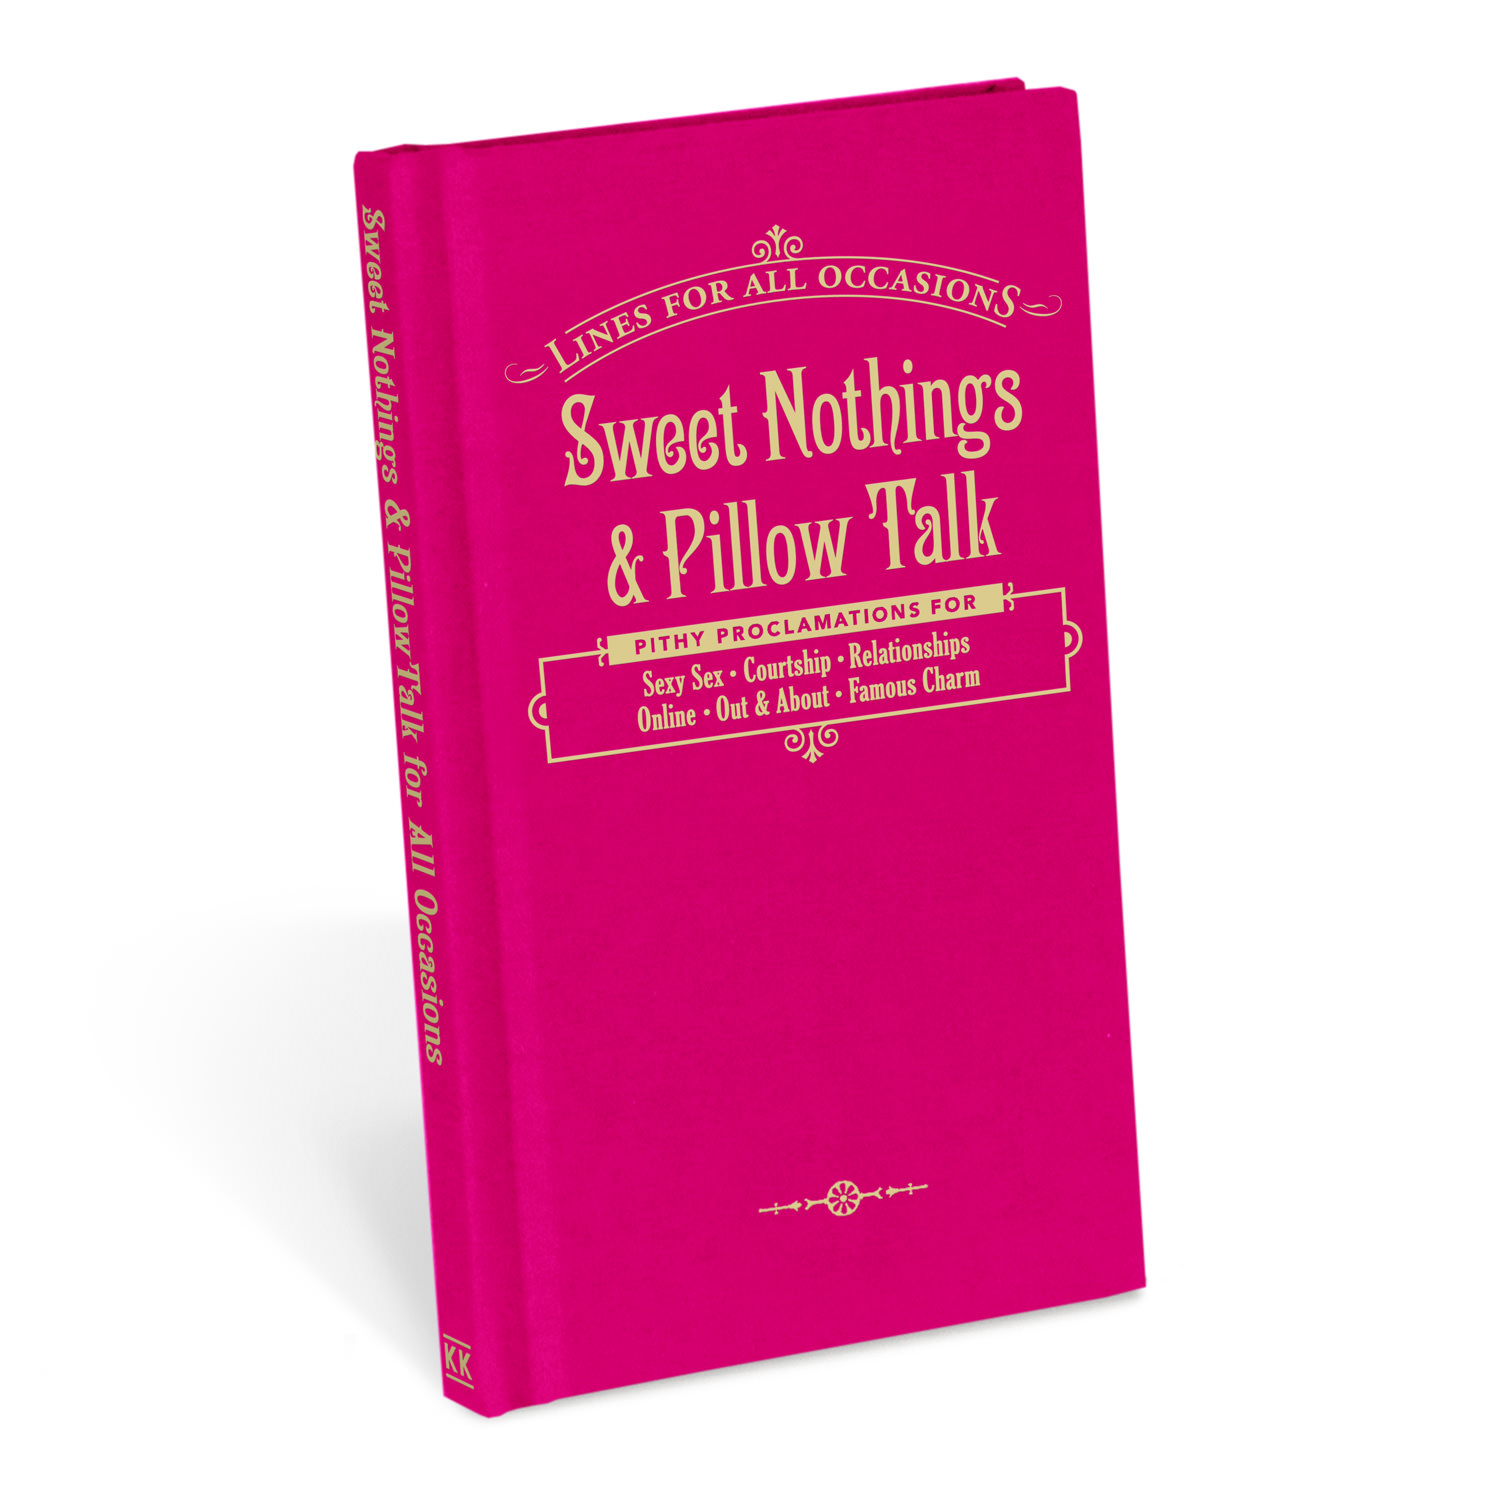 Sweet Nothings and Pillow Talk for All Occasions